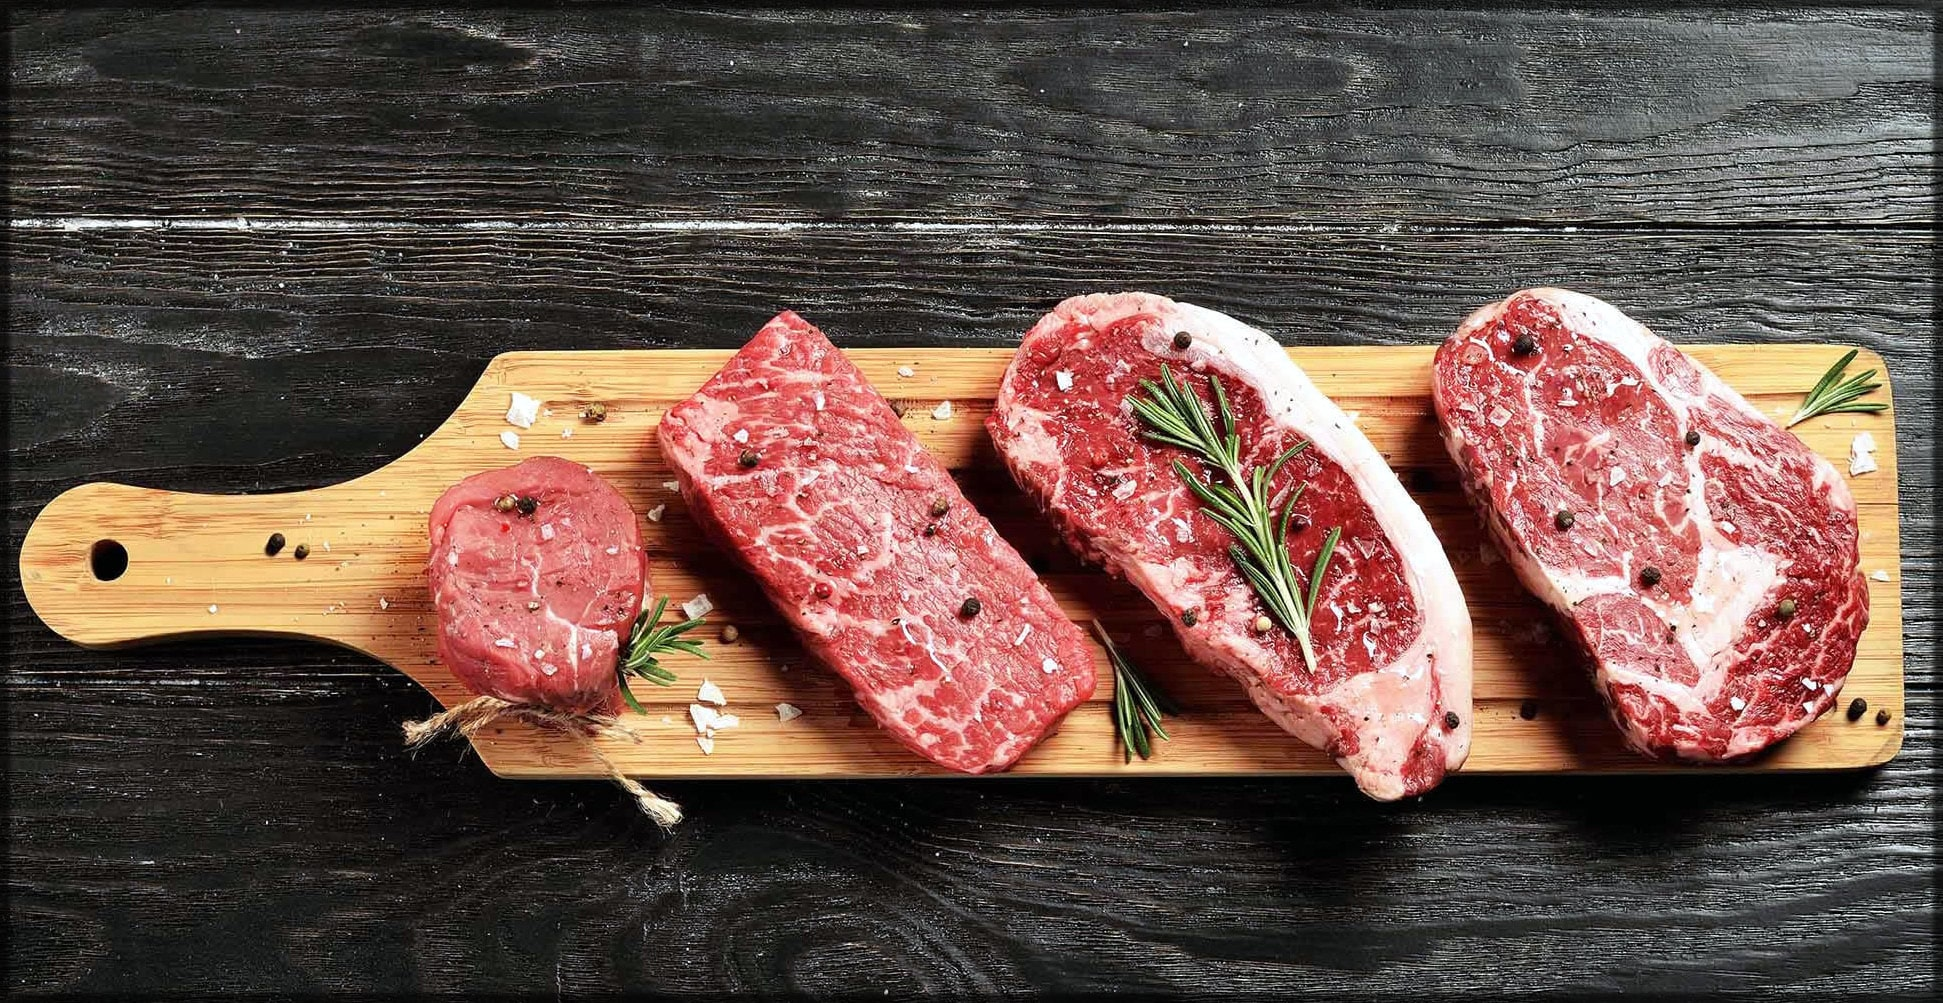 Red meat reduces eye bags